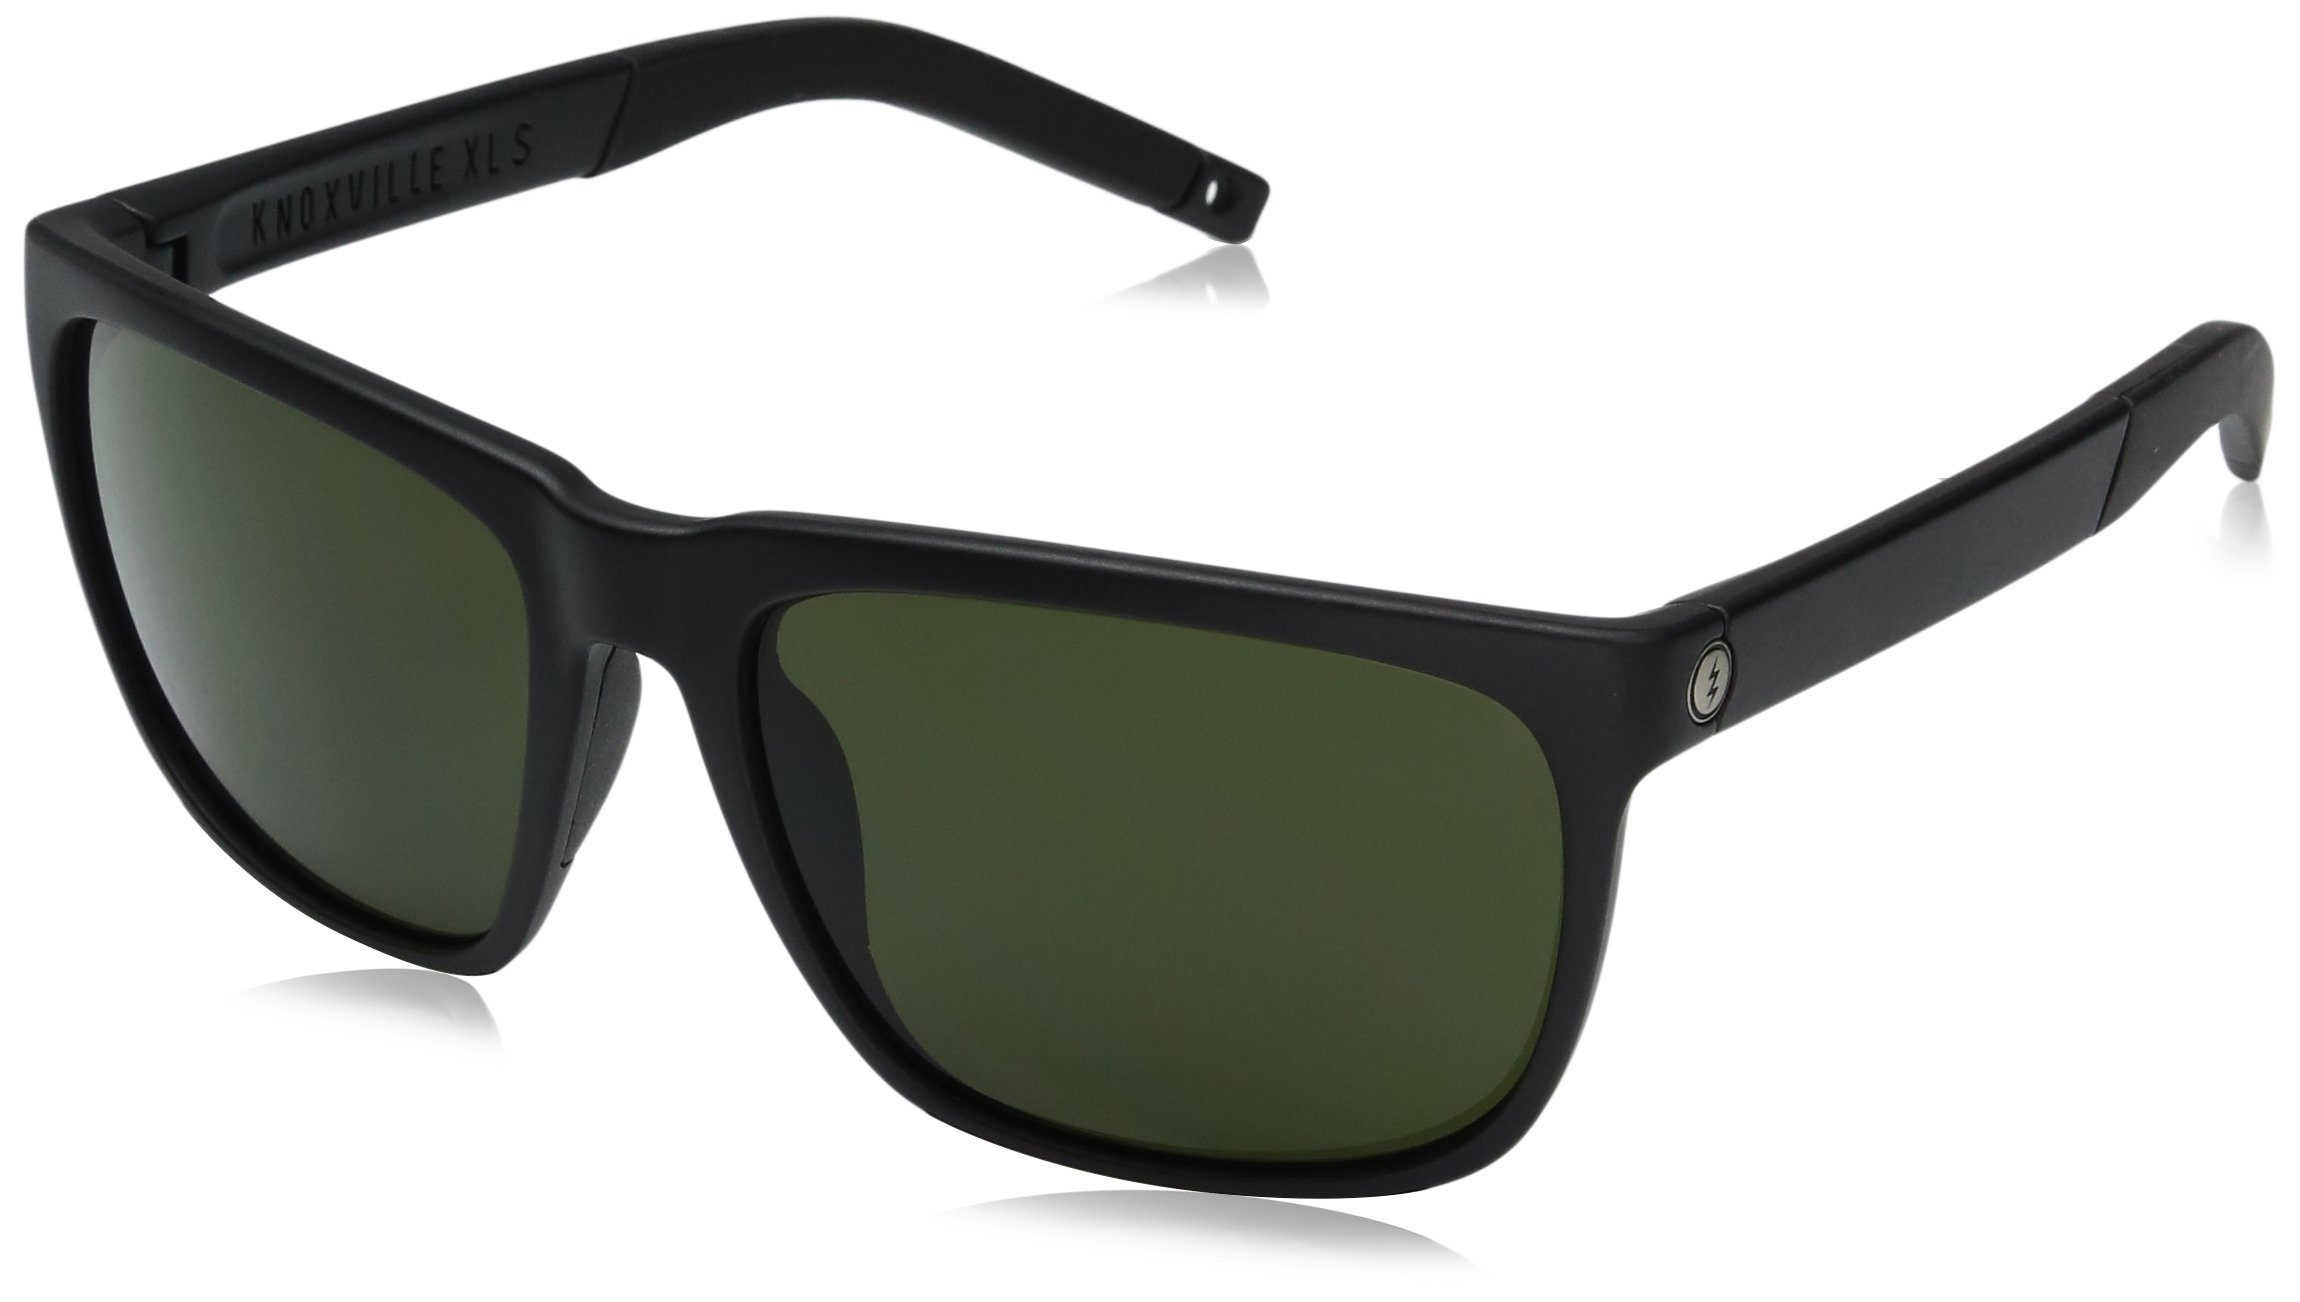 Electric Visual Knoxville XL S Matte Black/OHM Grey Sunglasses